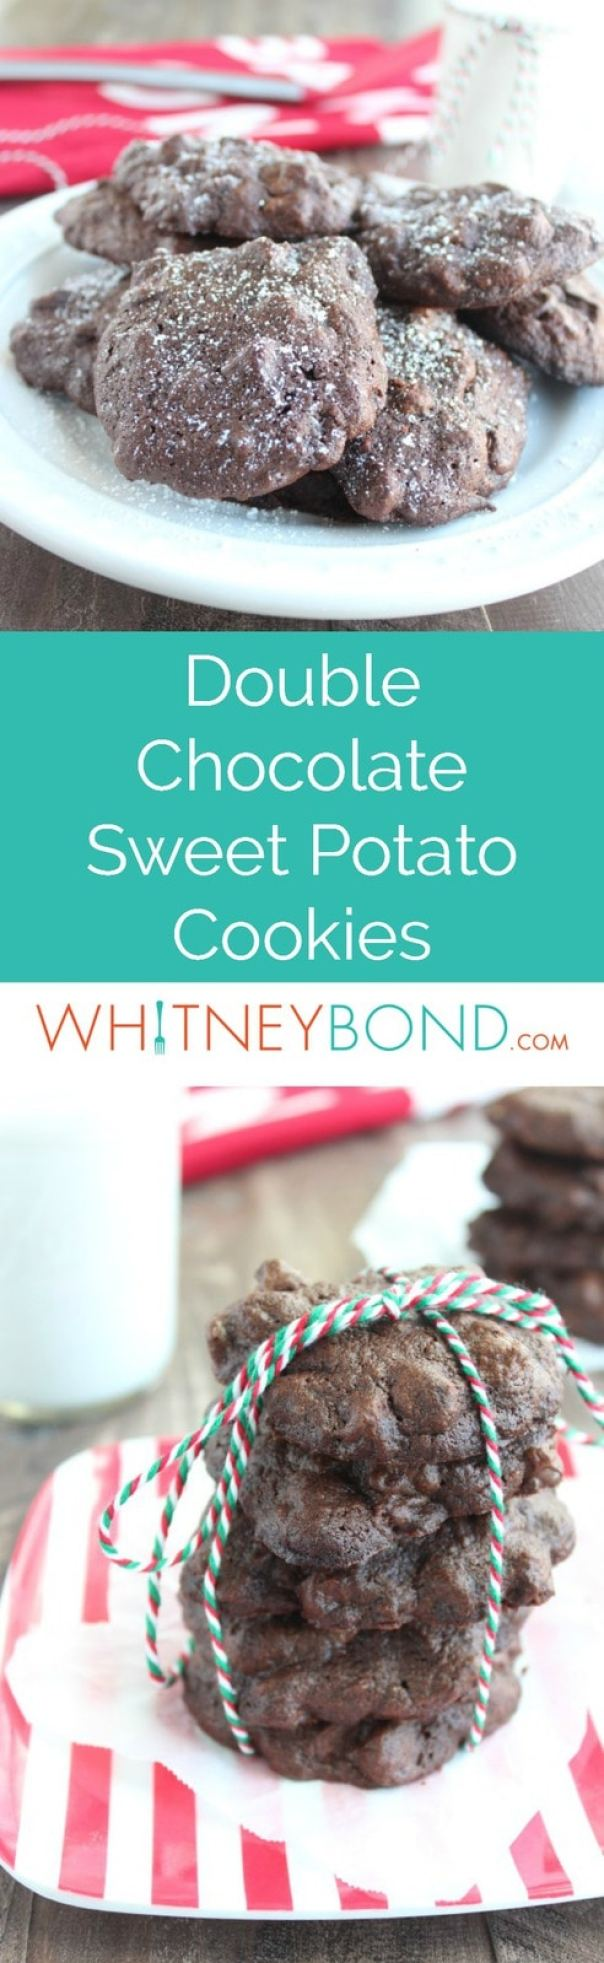 Mashed sweet potatoes add a delicious creaminess to this recipe for Double Chocolate Cookies, the perfect dessert for chocolate lovers!